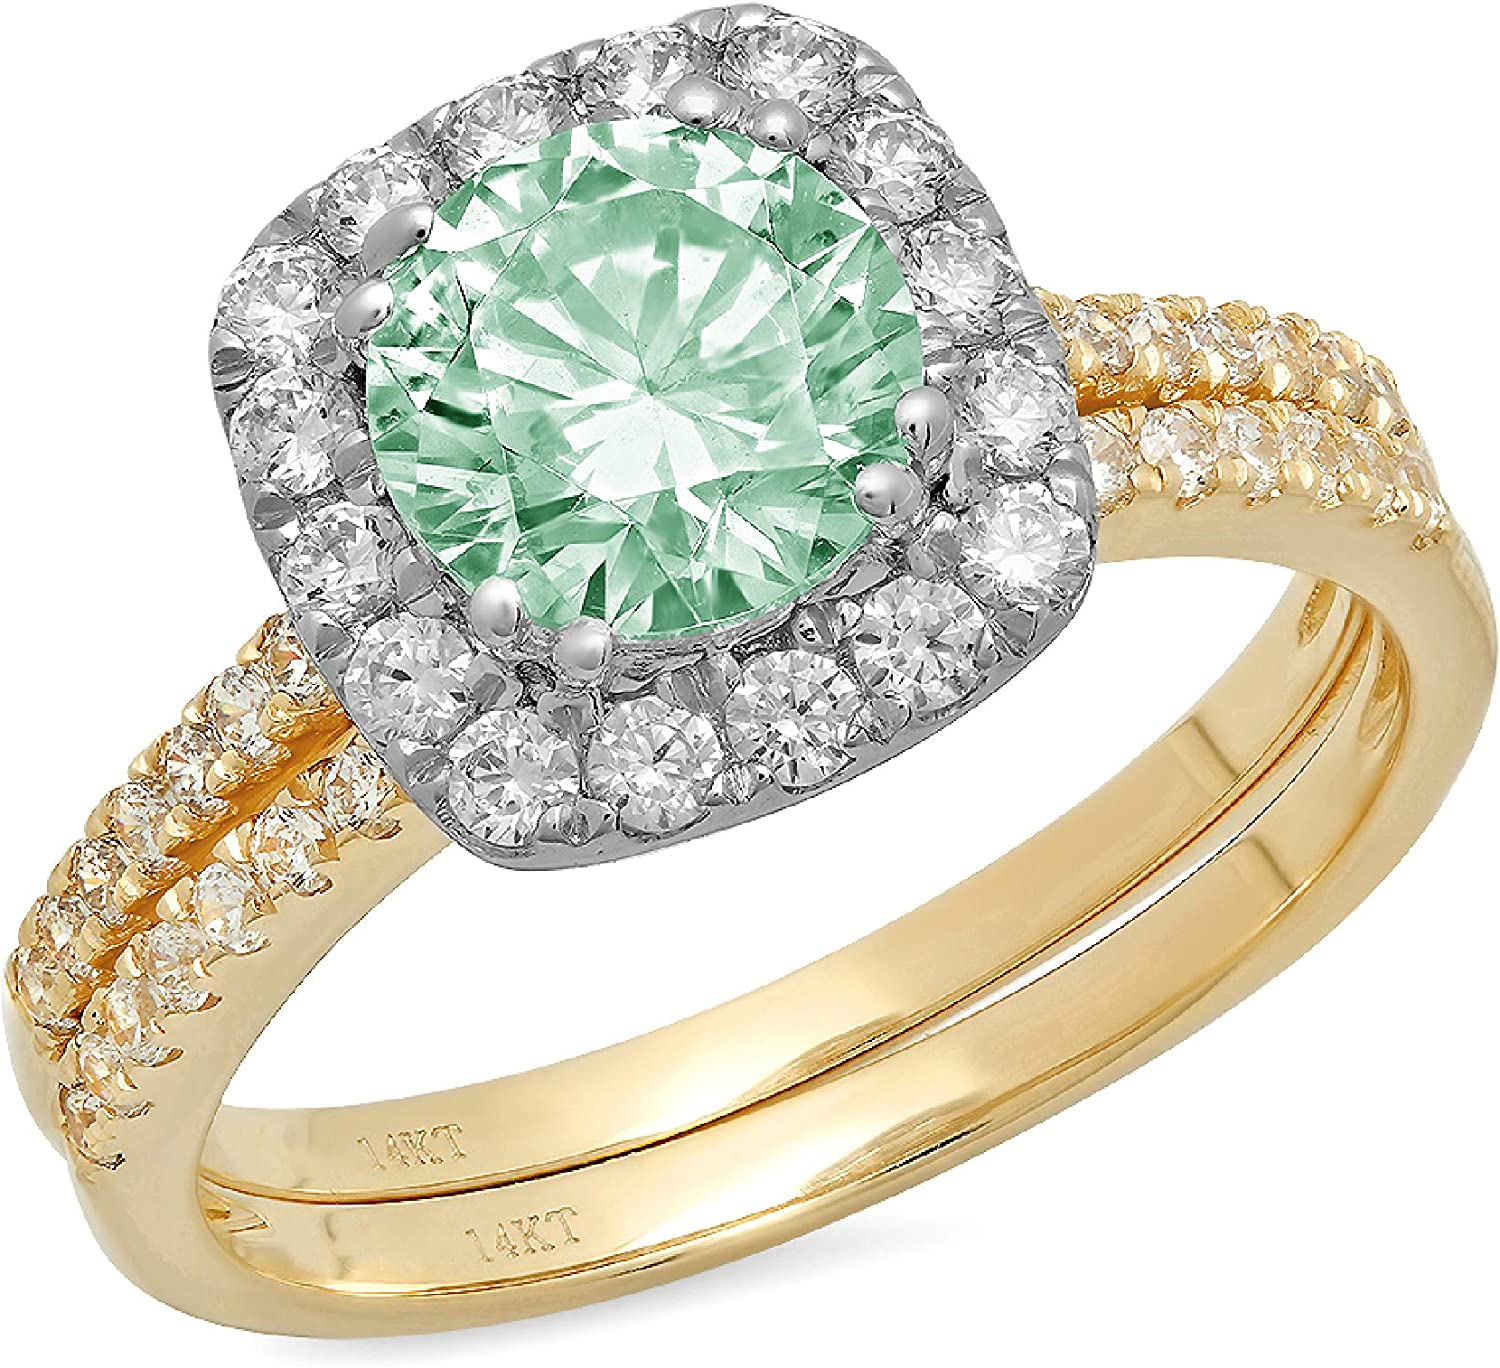 2.19ct Round Cut Halo Pave Solitaire Halo with Accent VVS1 Ideal Turquoise Green Simulated Diamond CZ Engagement Promise Designer Anniversary Wedding Bridal ring band set 14k Yellow White Gold